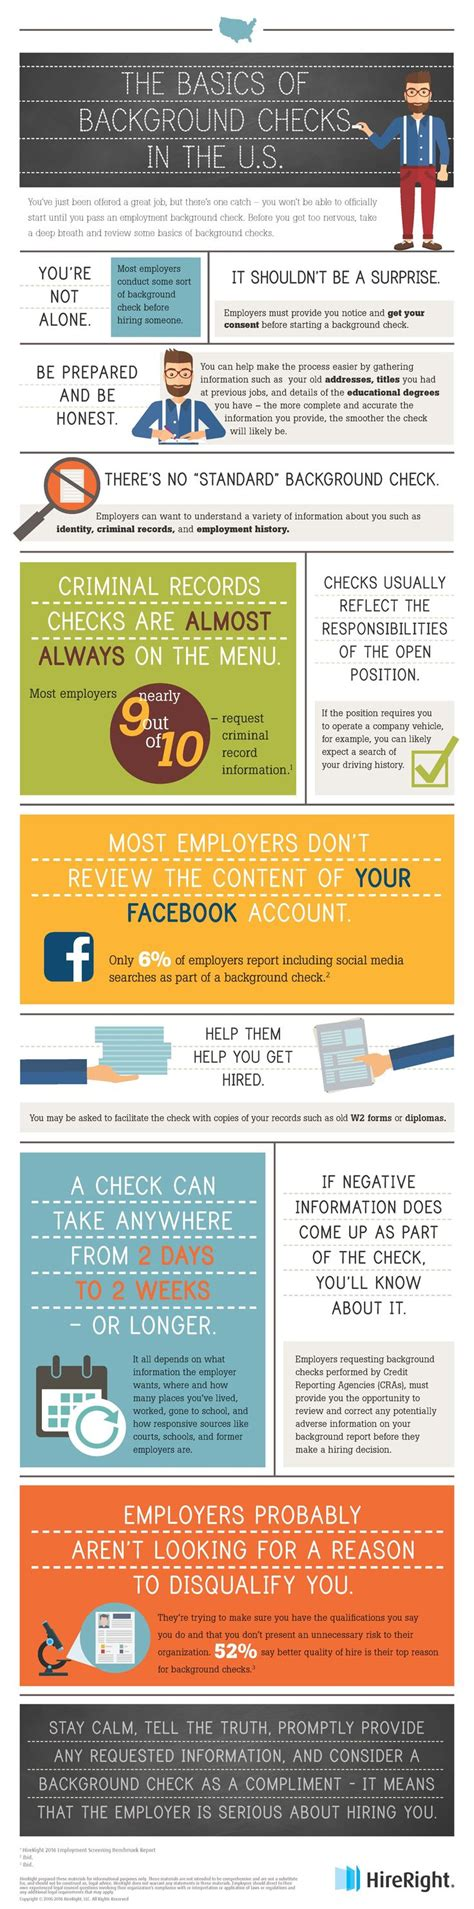 Righthire Background Check 24 Best Images About Hireright Infographics On Facts The Box And